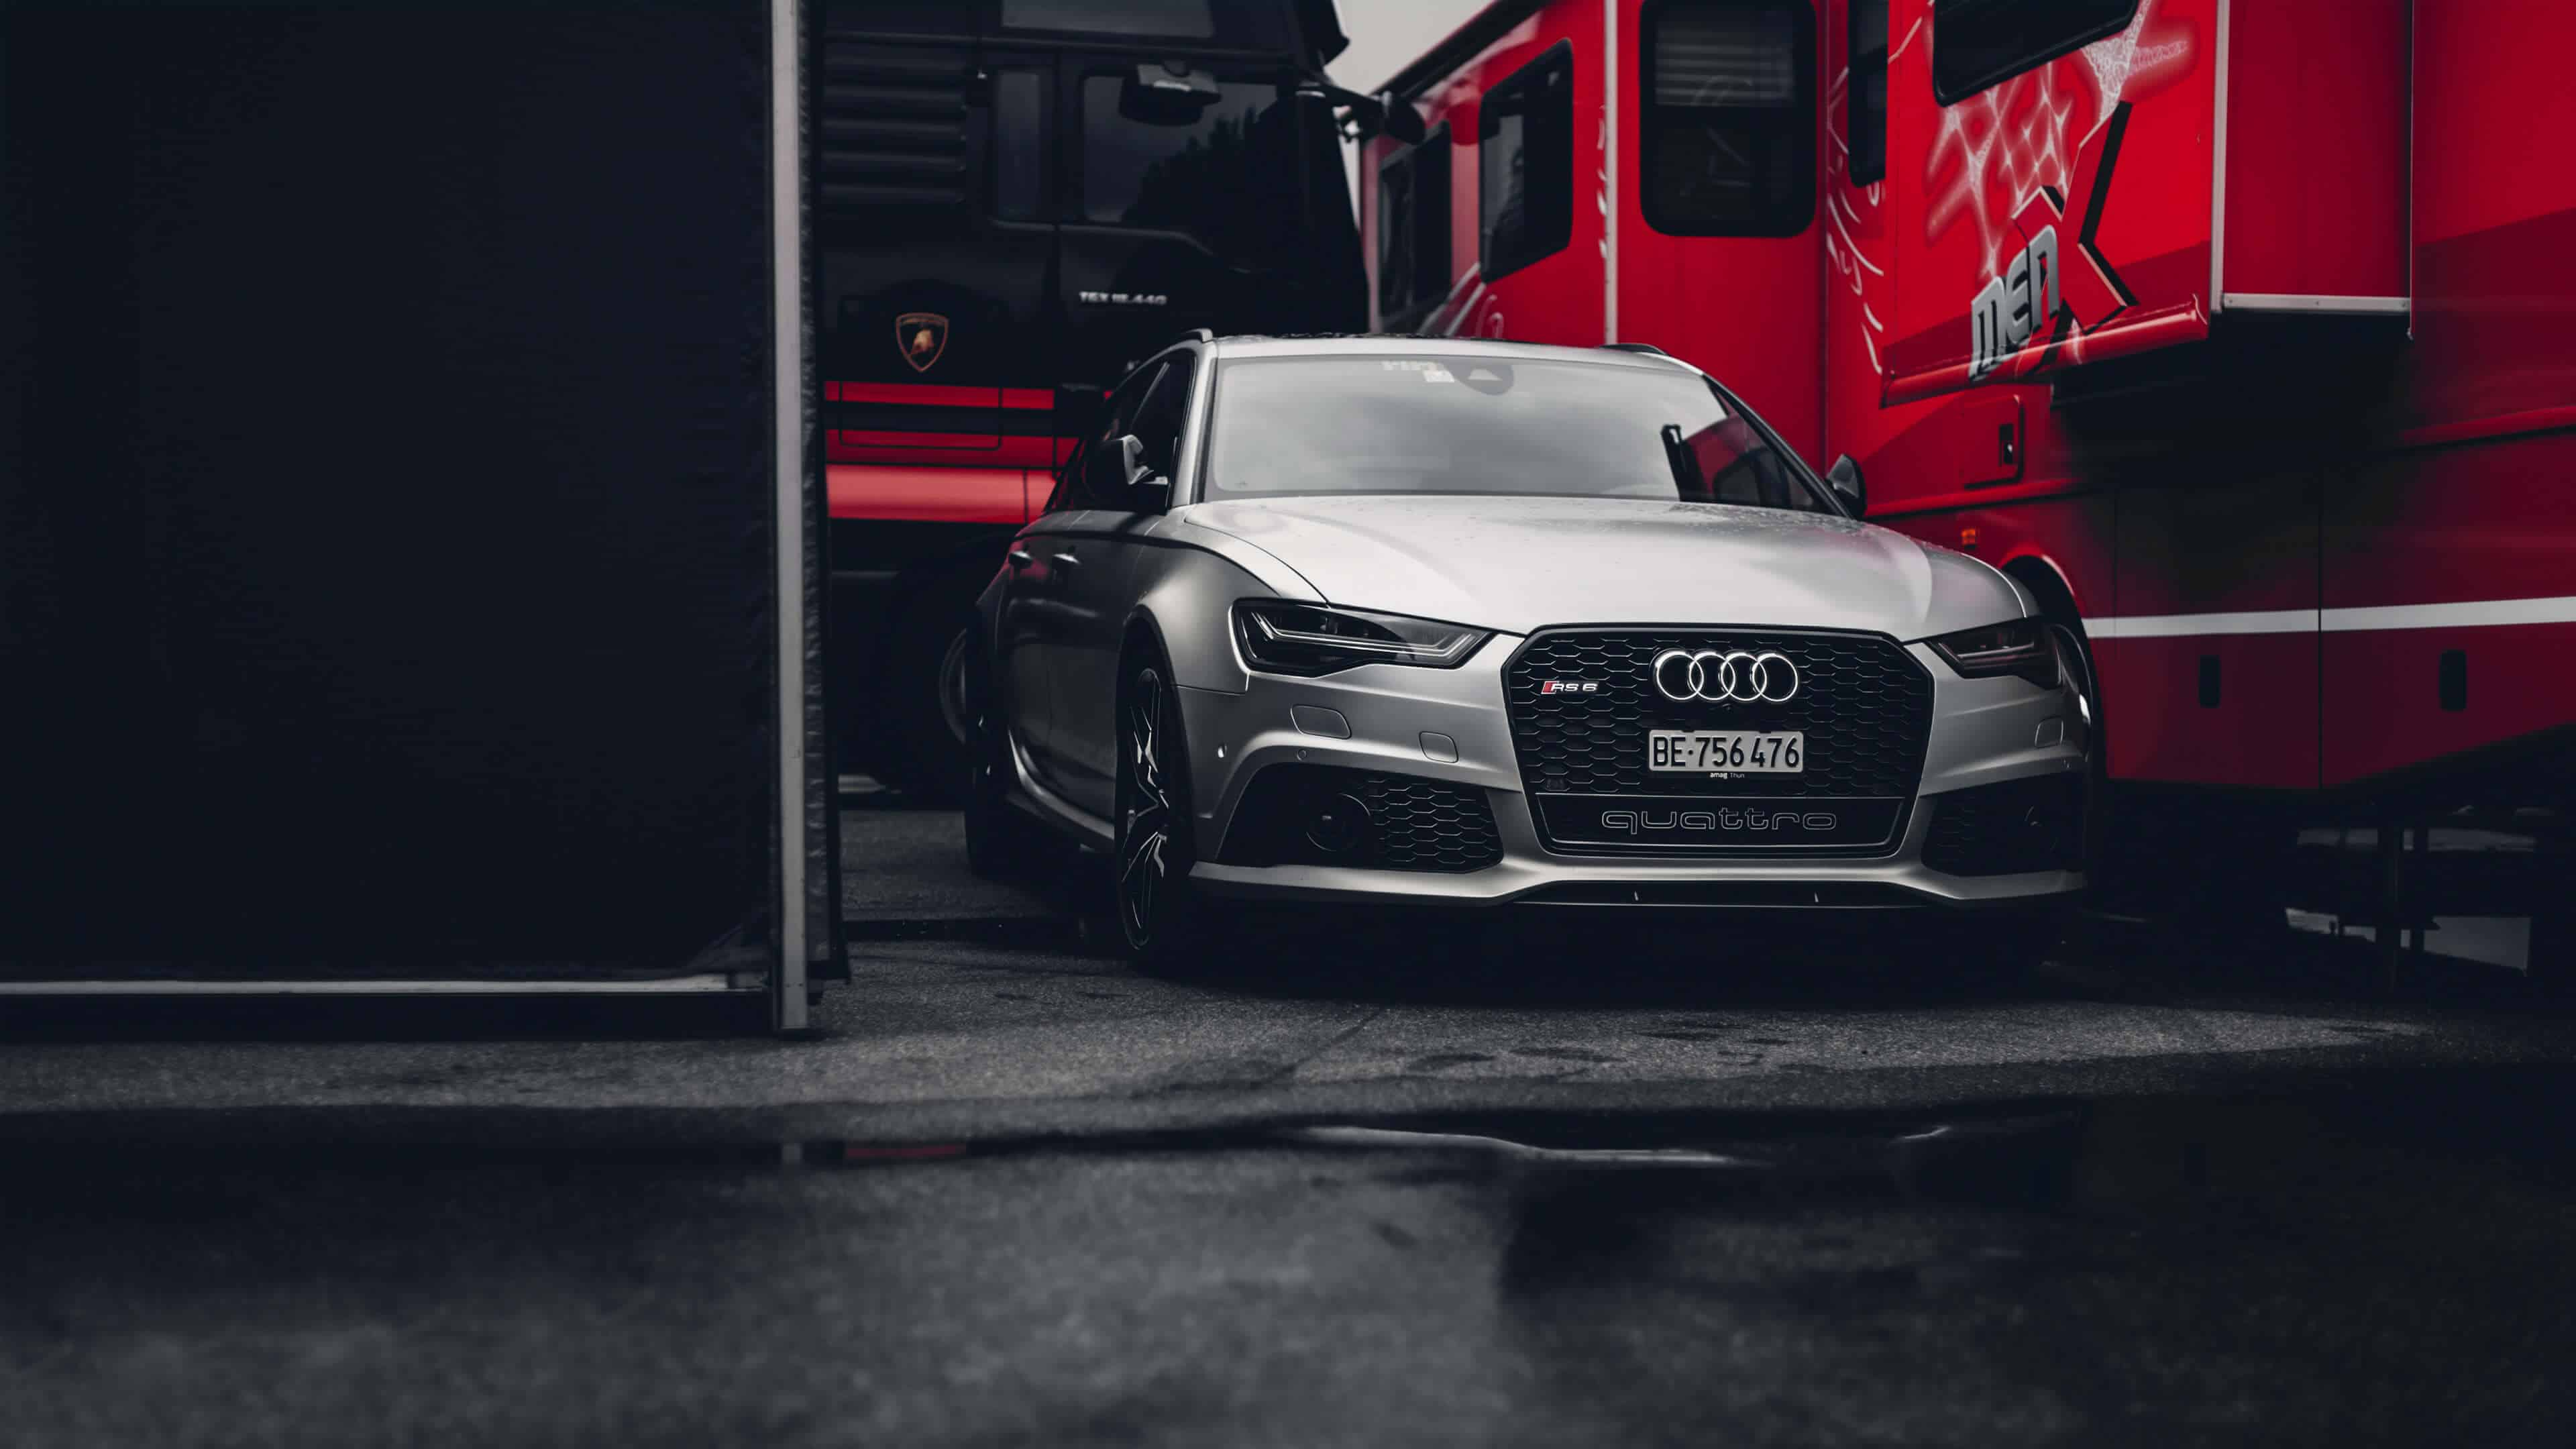 audi rs6 quattro uhd 4k wallpaper